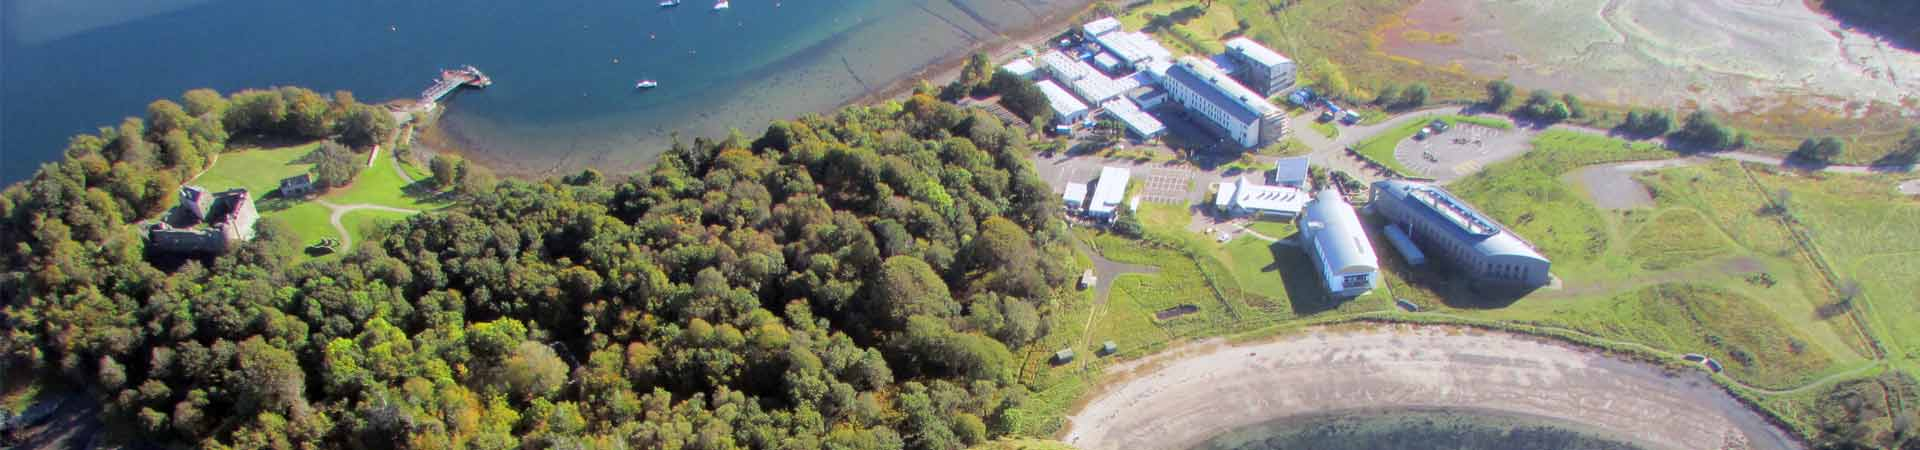 Aerial photograph of the Dunstaffnage peninsula with Dunstaffnage castle, SAMS, European Marine Science Park and SAMS' pontoon